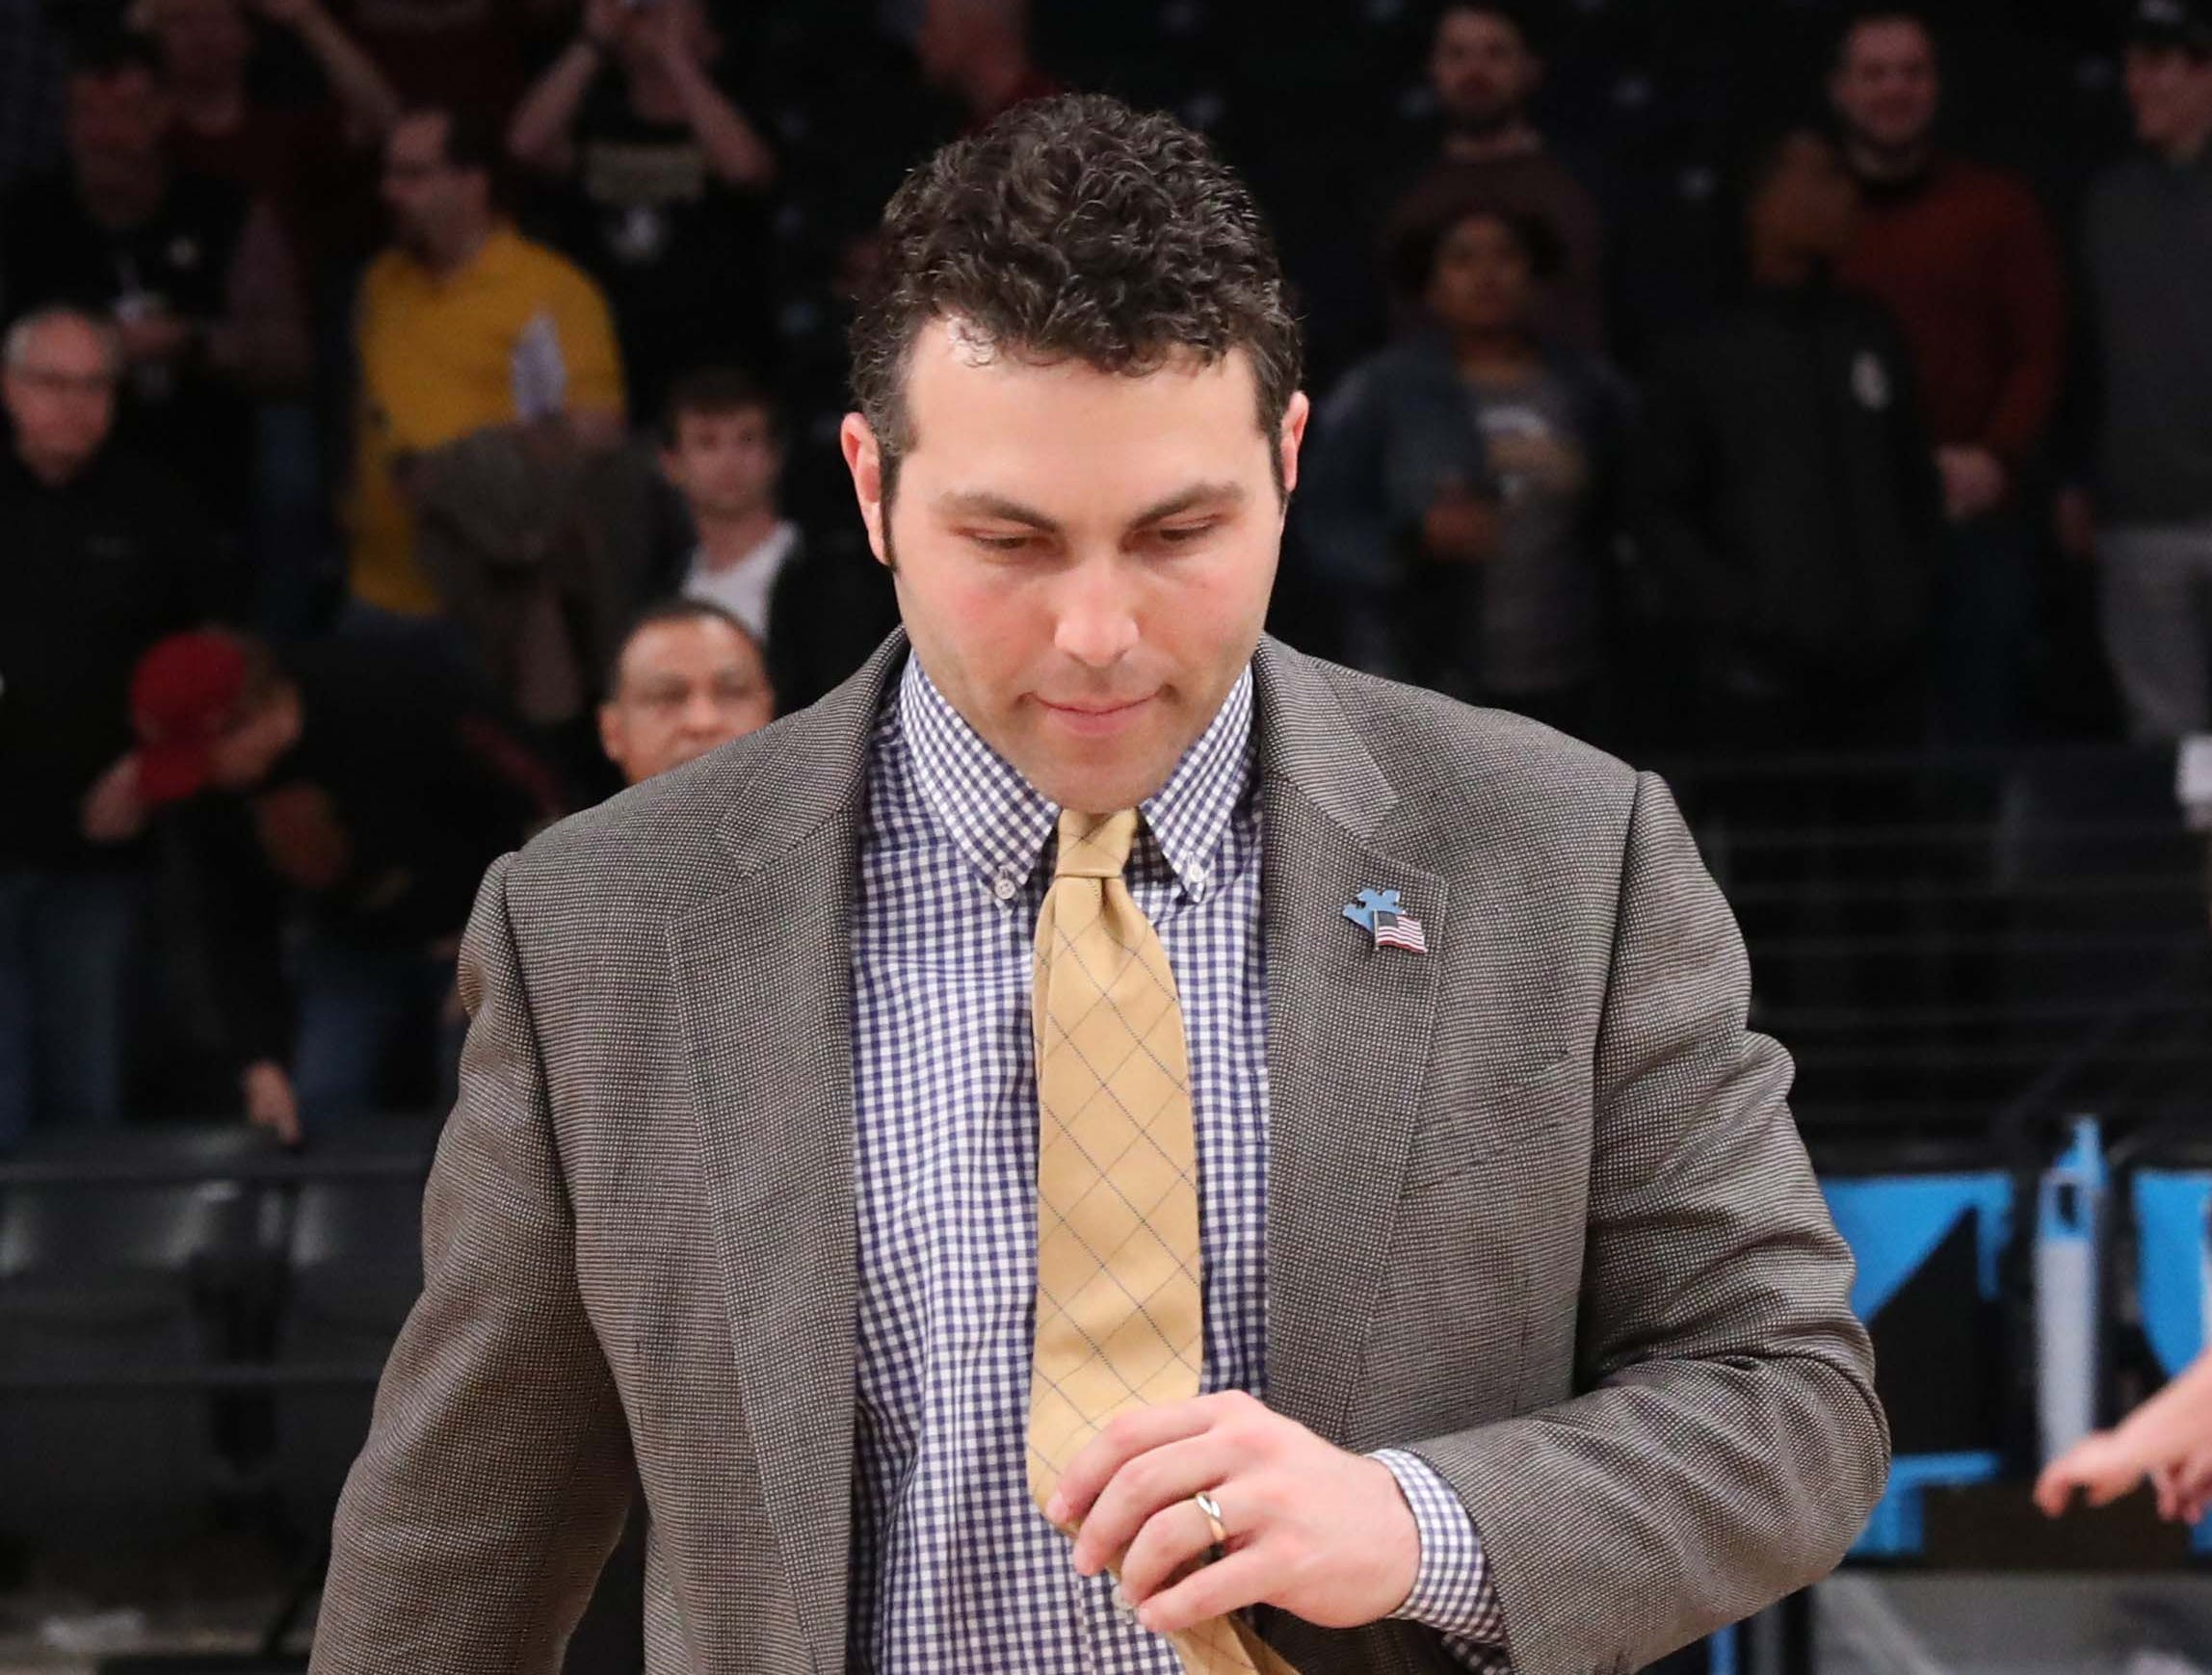 Feb 16, 2019; Atlanta, GA, USA; Georgia Tech Yellow Jackets head coach Josh Pastner walks off of the court after their loss to the Florida State Seminoles at McCamish Pavilion. Mandatory Credit: Jason Getz-USA TODAY Sports